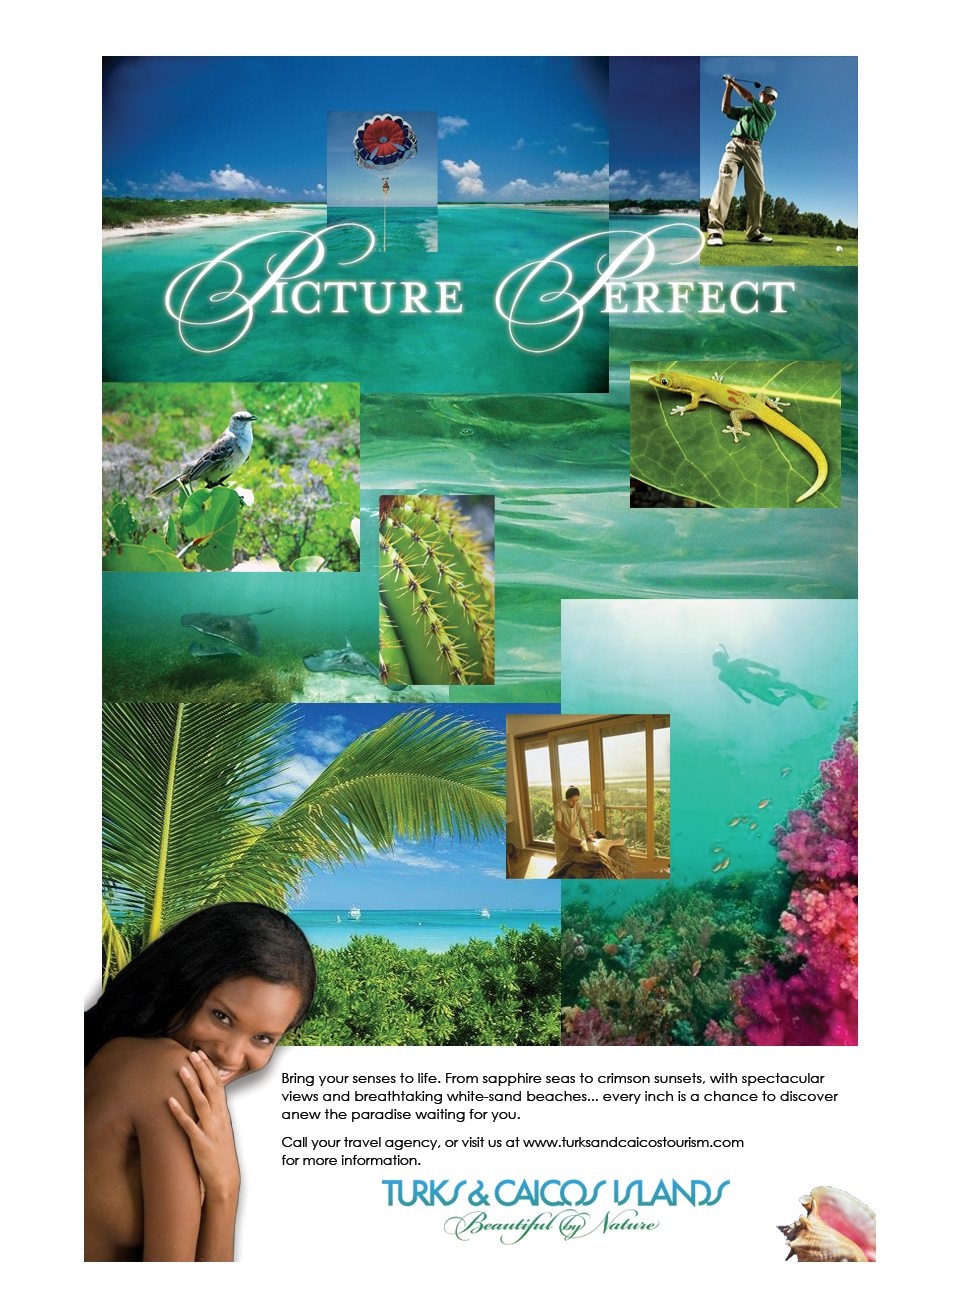 Turks & Caicos Islands - Picture Perfect Ad